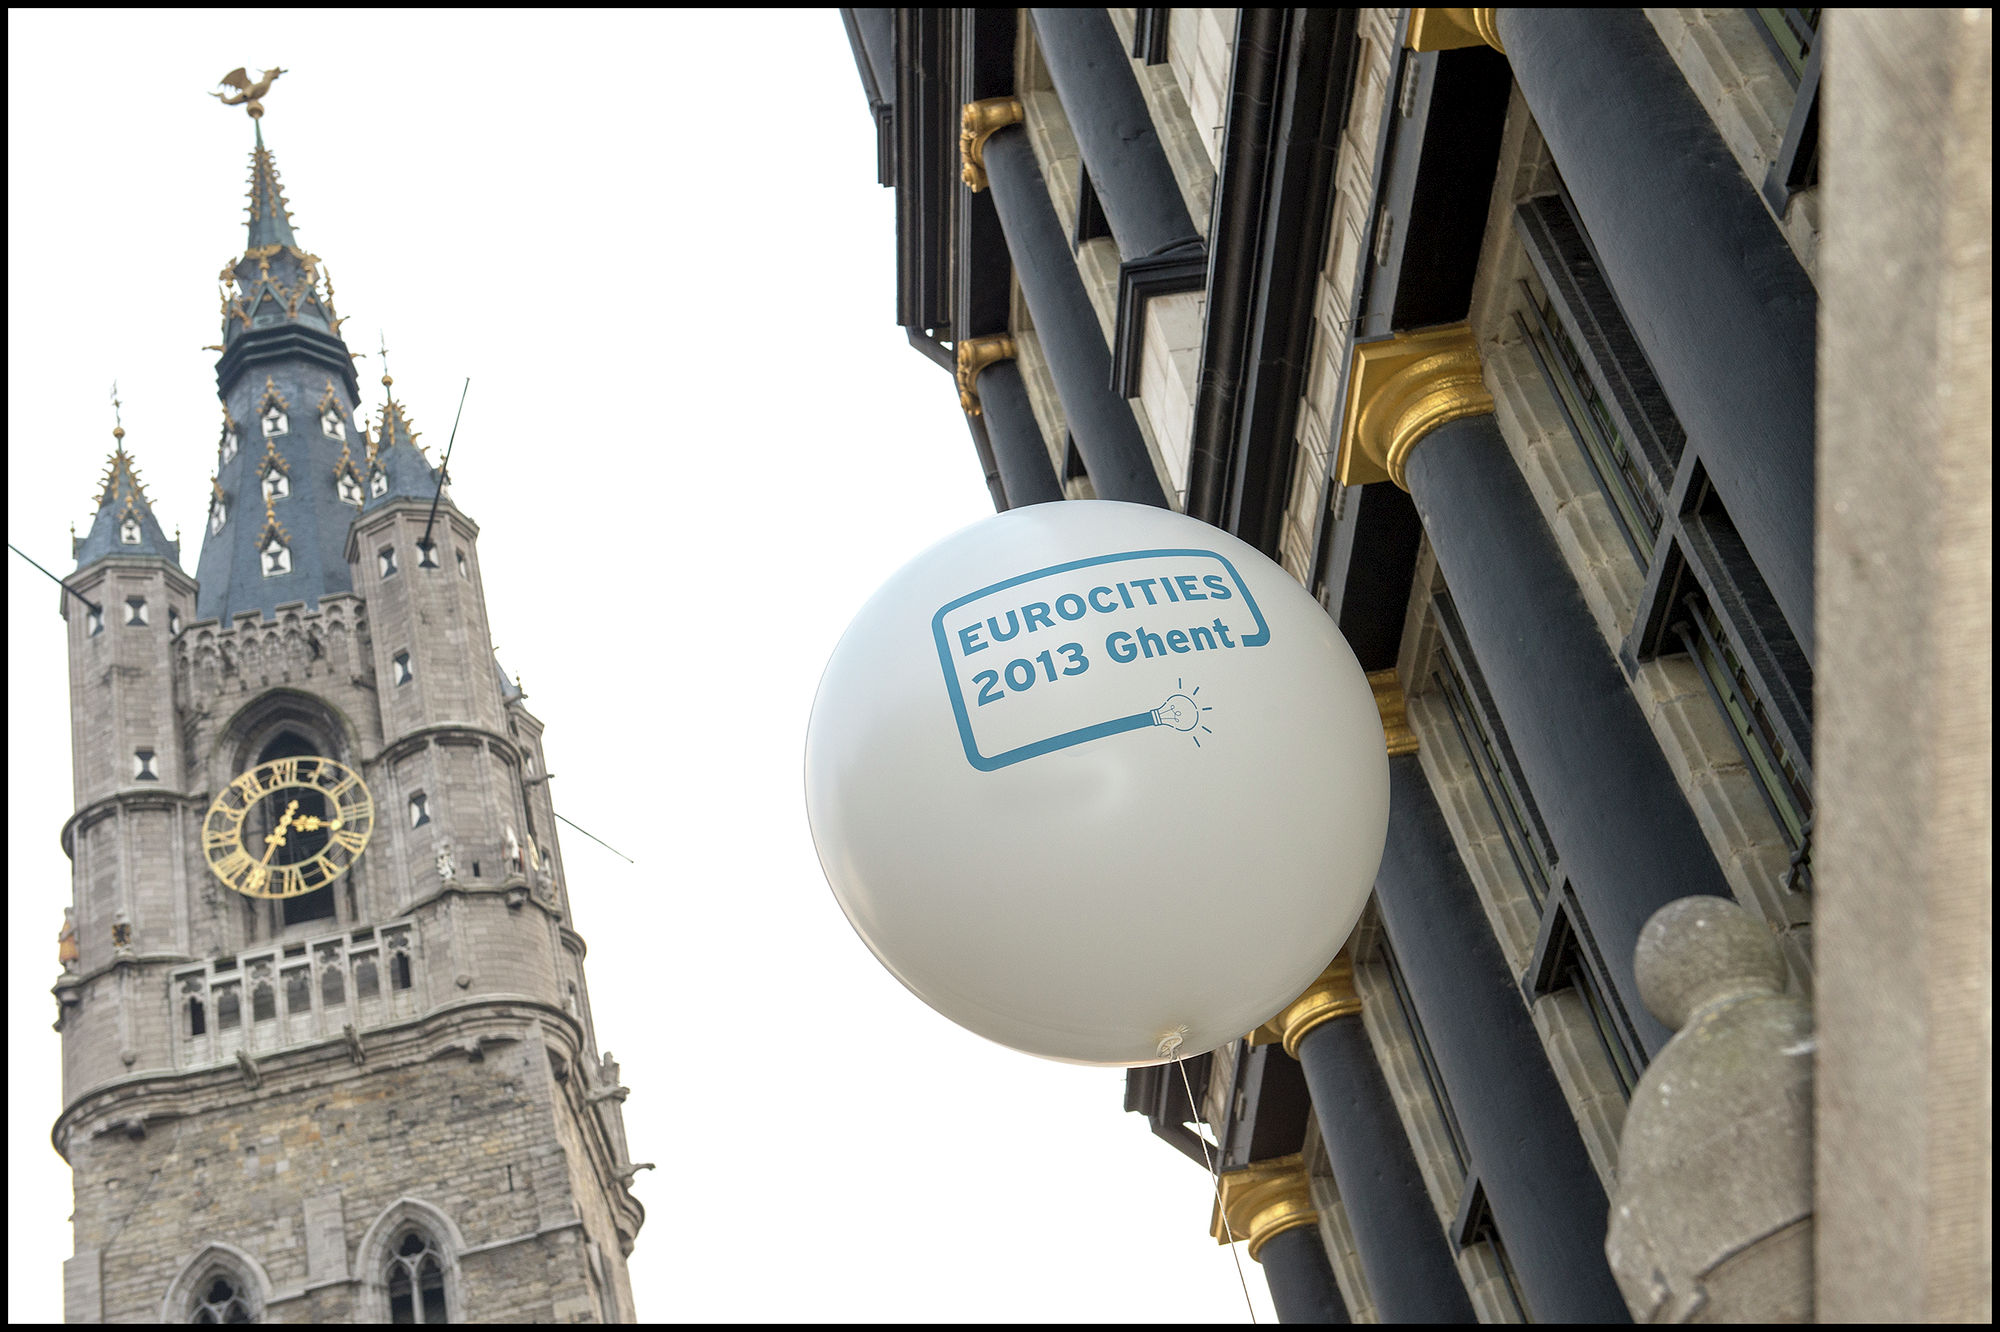 Eurocities in Gent